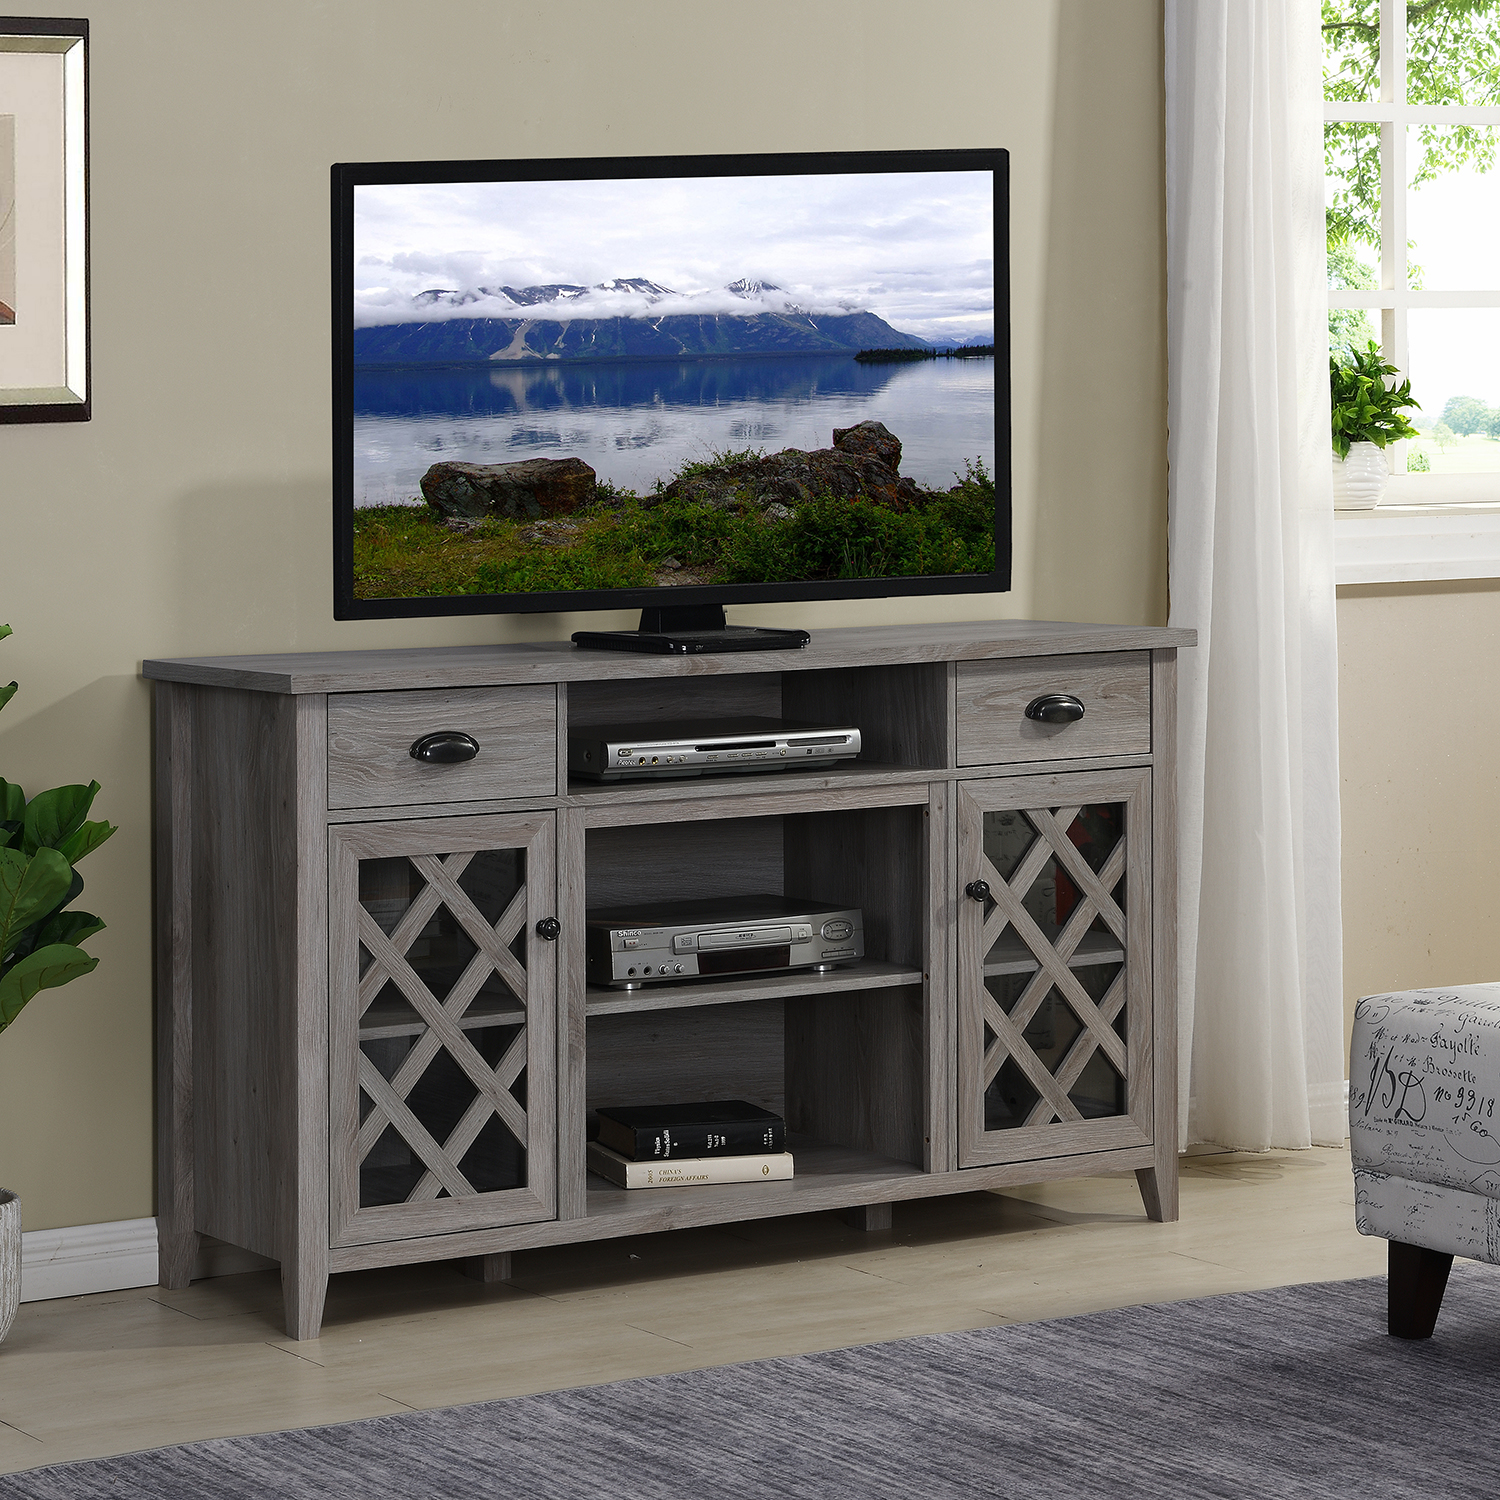 Home Source Grey Tv Stand Walmart Com Walmart Com